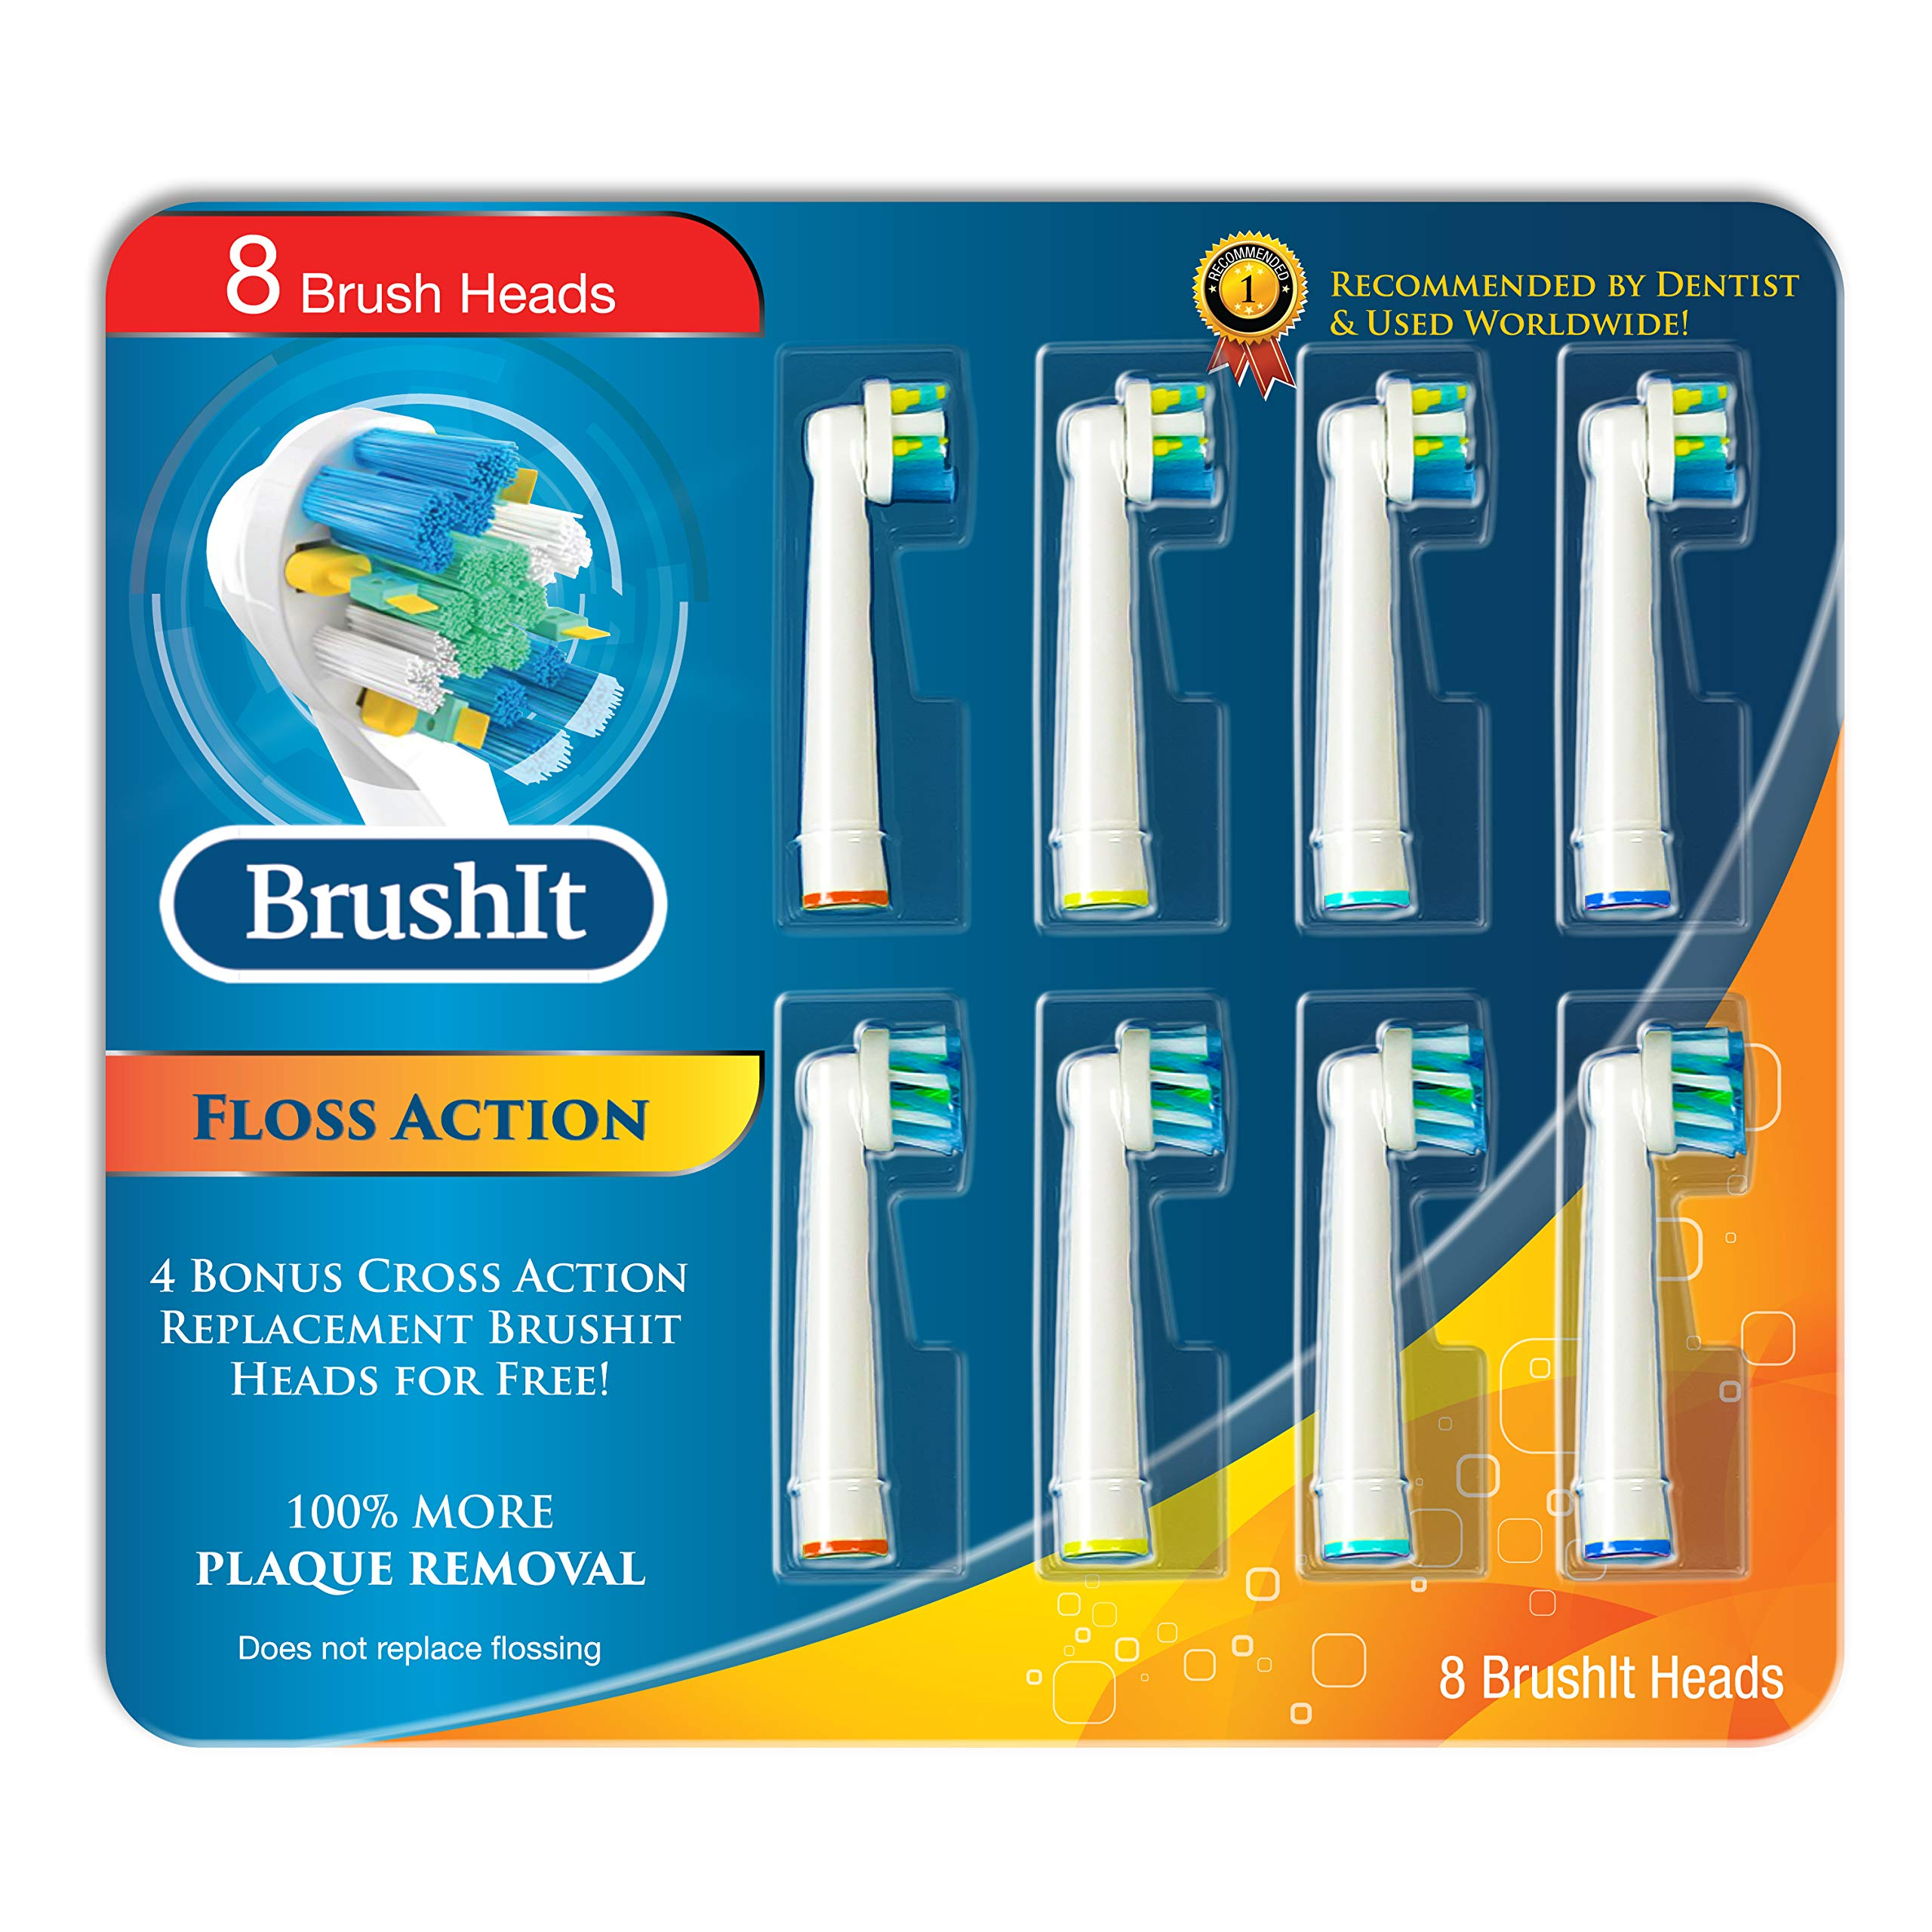 MelMel Toothbrush Replacement Brush Heads Refill for Oral B Braun Electric Toothbrush, Pro1000 Pro1500 Pro3000 Pro6000 Pro7000, Genius 8000 9600, 4 Floss Action, 4 Cross Action, 8 Count by MelMel